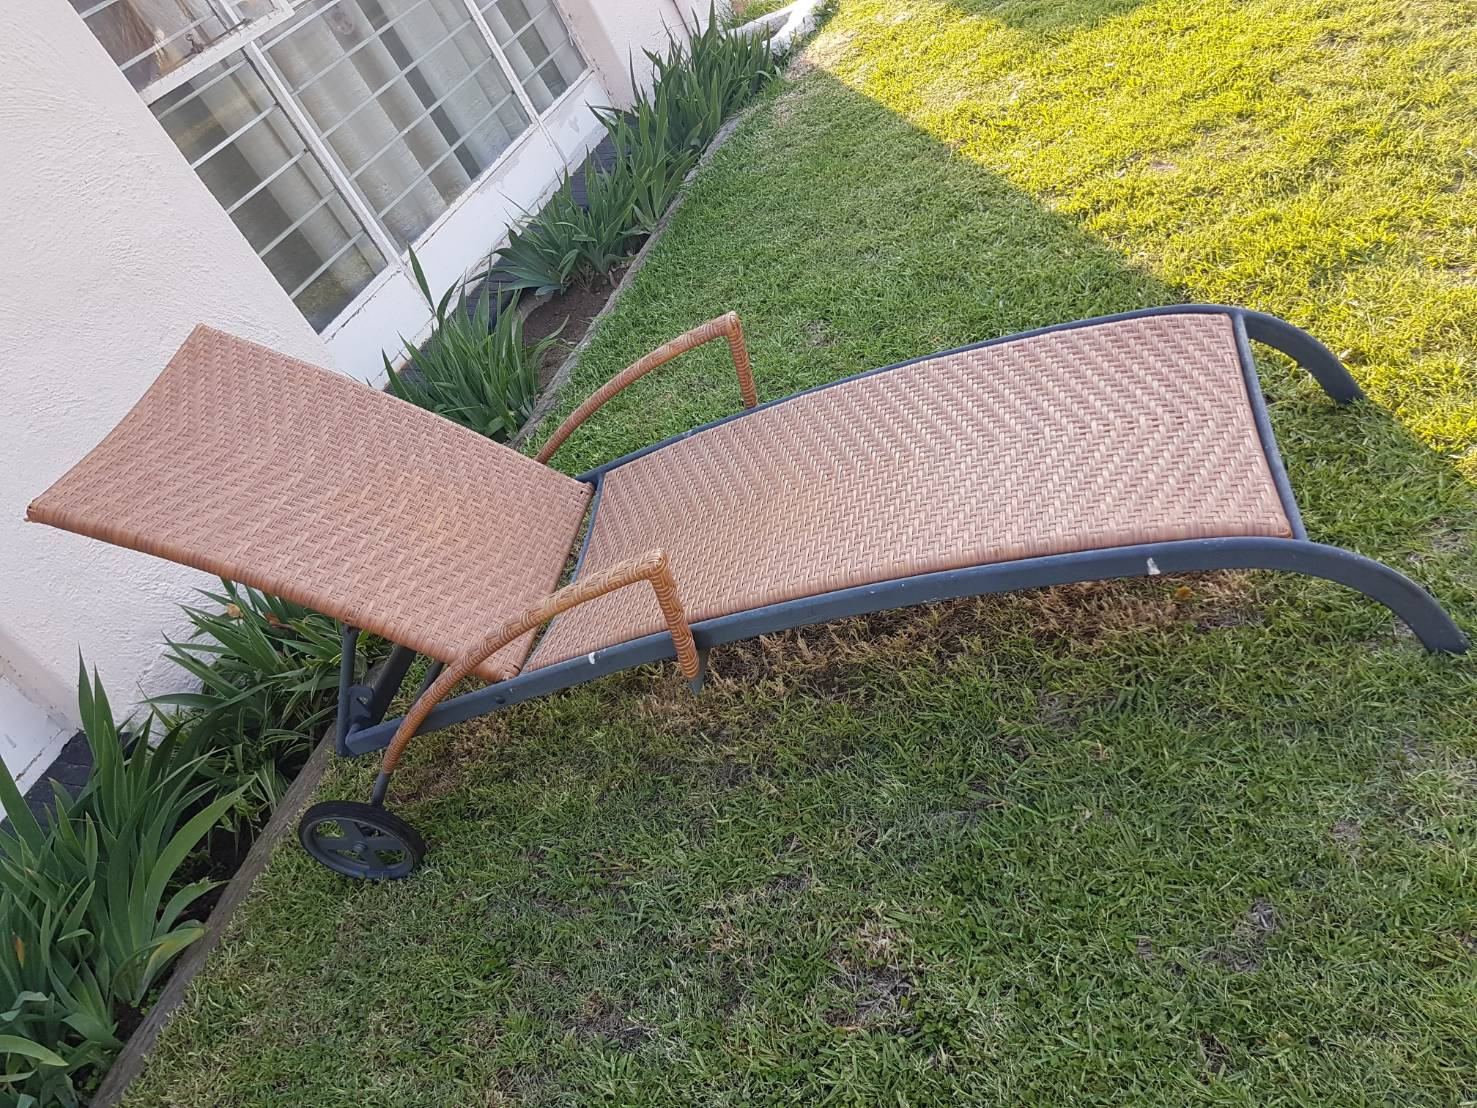 Pool Lounger in good condition